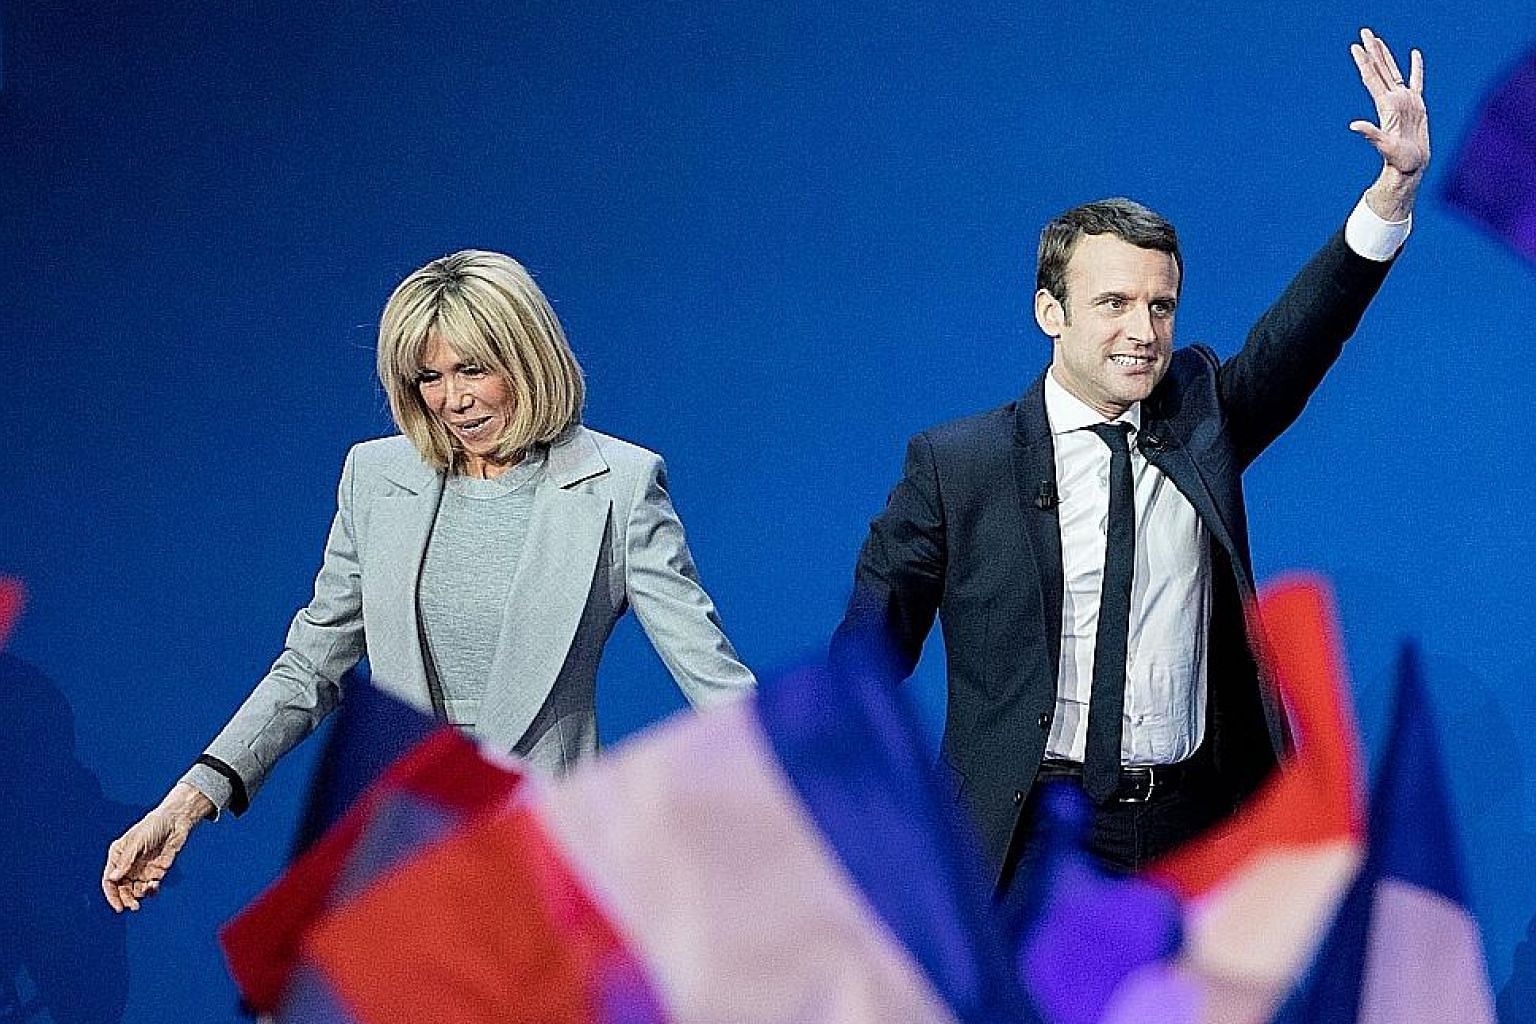 Presidential candidate Emmanuel Macron and his wife Brigitte Trogneux arriving at Parc des Expositions in Paris, France, on Sunday to deliver a speech after the first round of voting in the election.